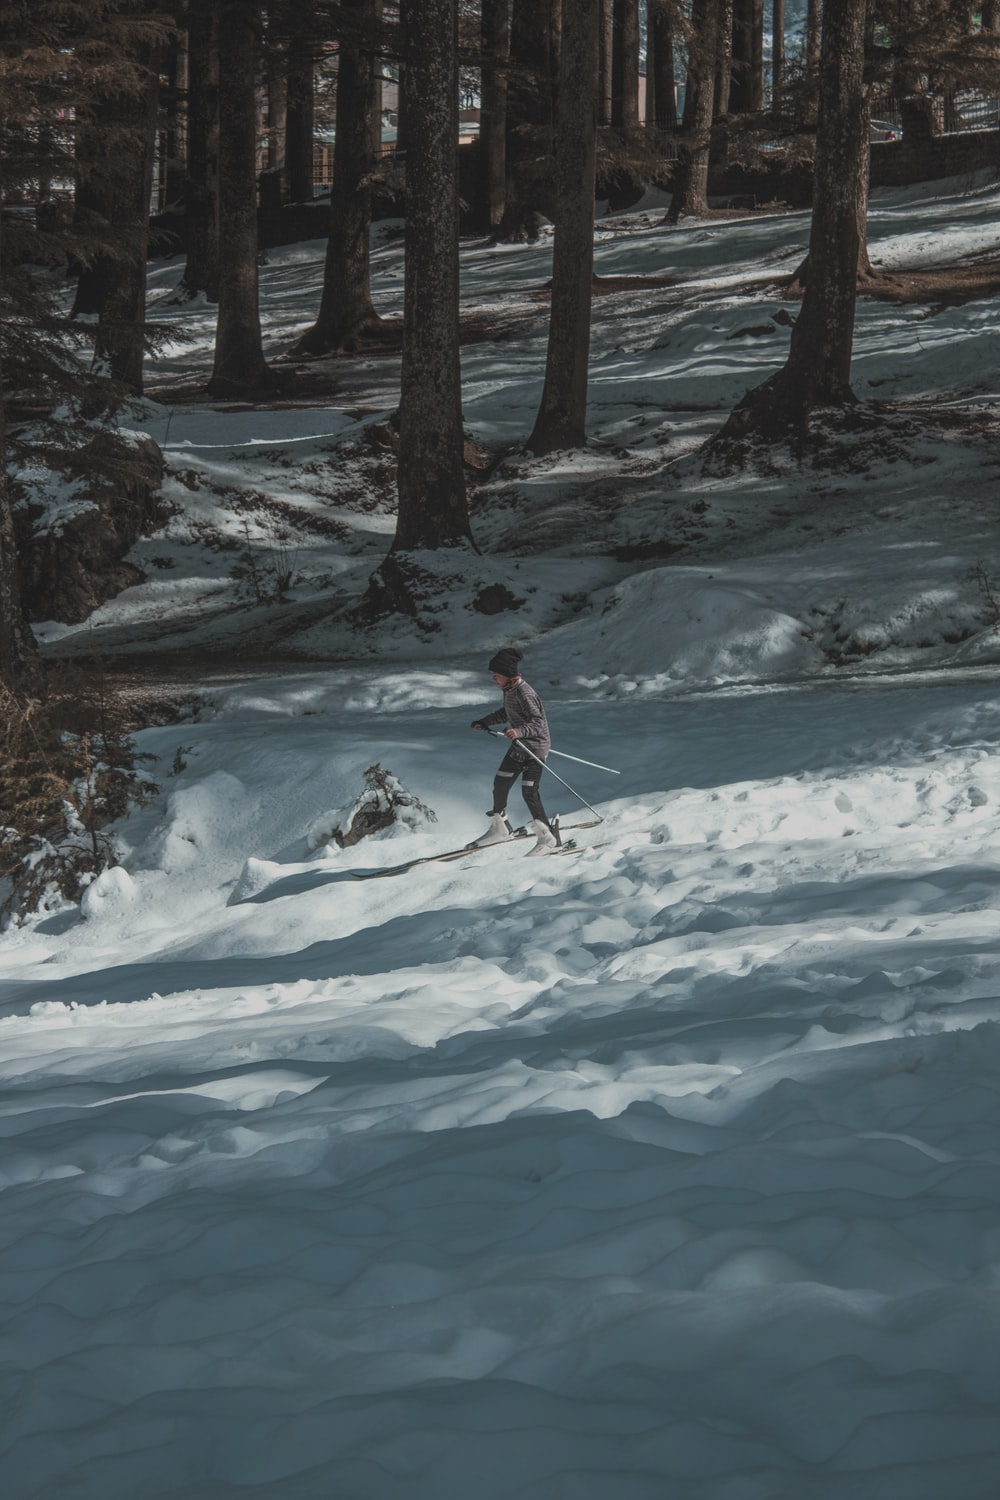 woman skiing on snow near woods